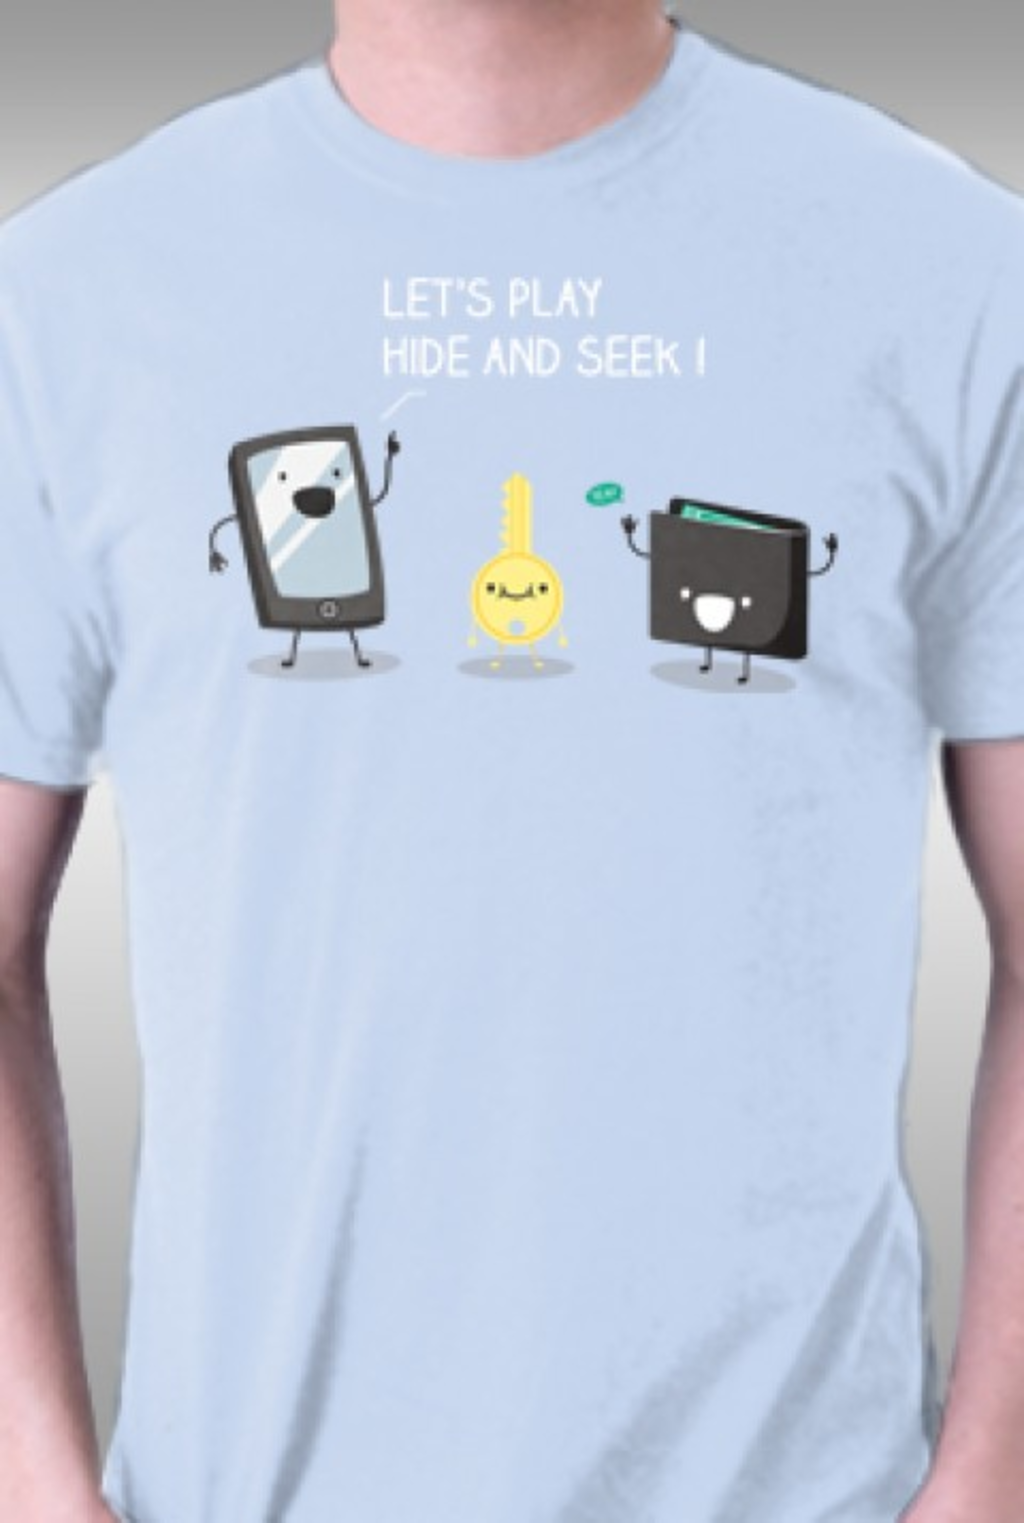 TeeFury: Let's Play a Game